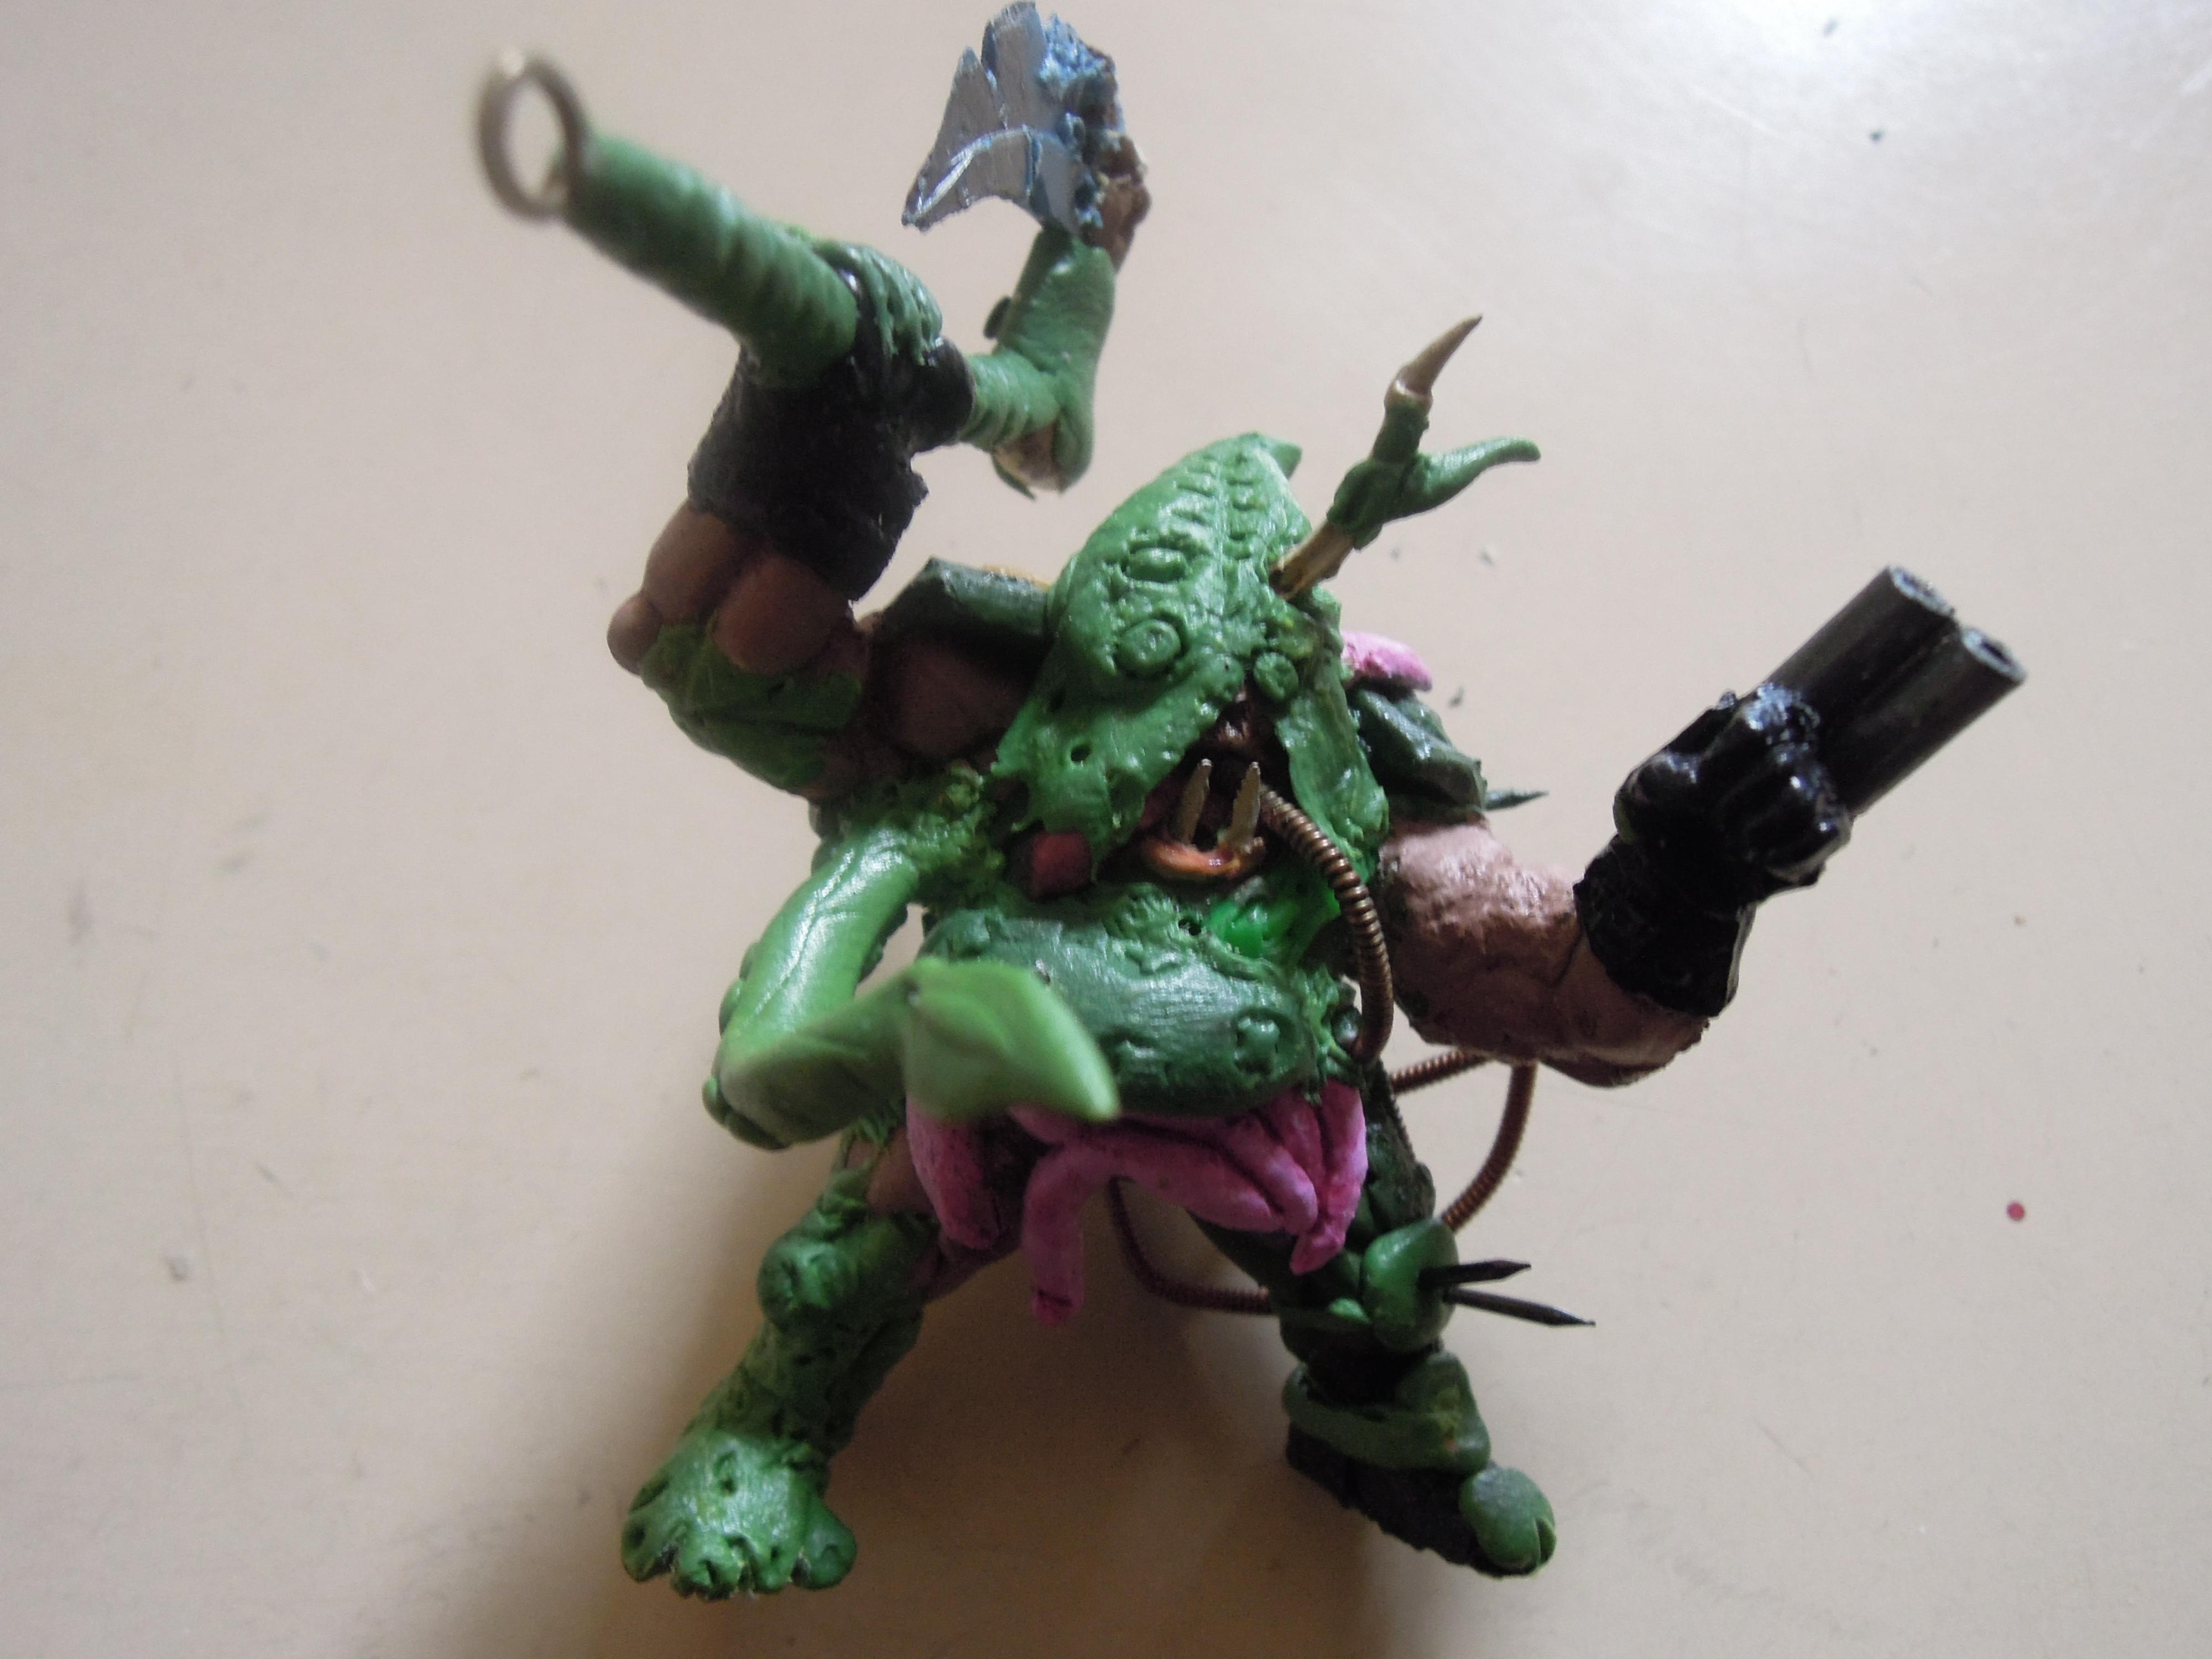 Axe, Blight, Chaos, Chaos Space Marines, Conversion, Daemon Prince, Death Guard, Guts, Hood, Nurgle, Plague, Poleaxe, Rot, Scratch Build, Technolog, Work In Progress